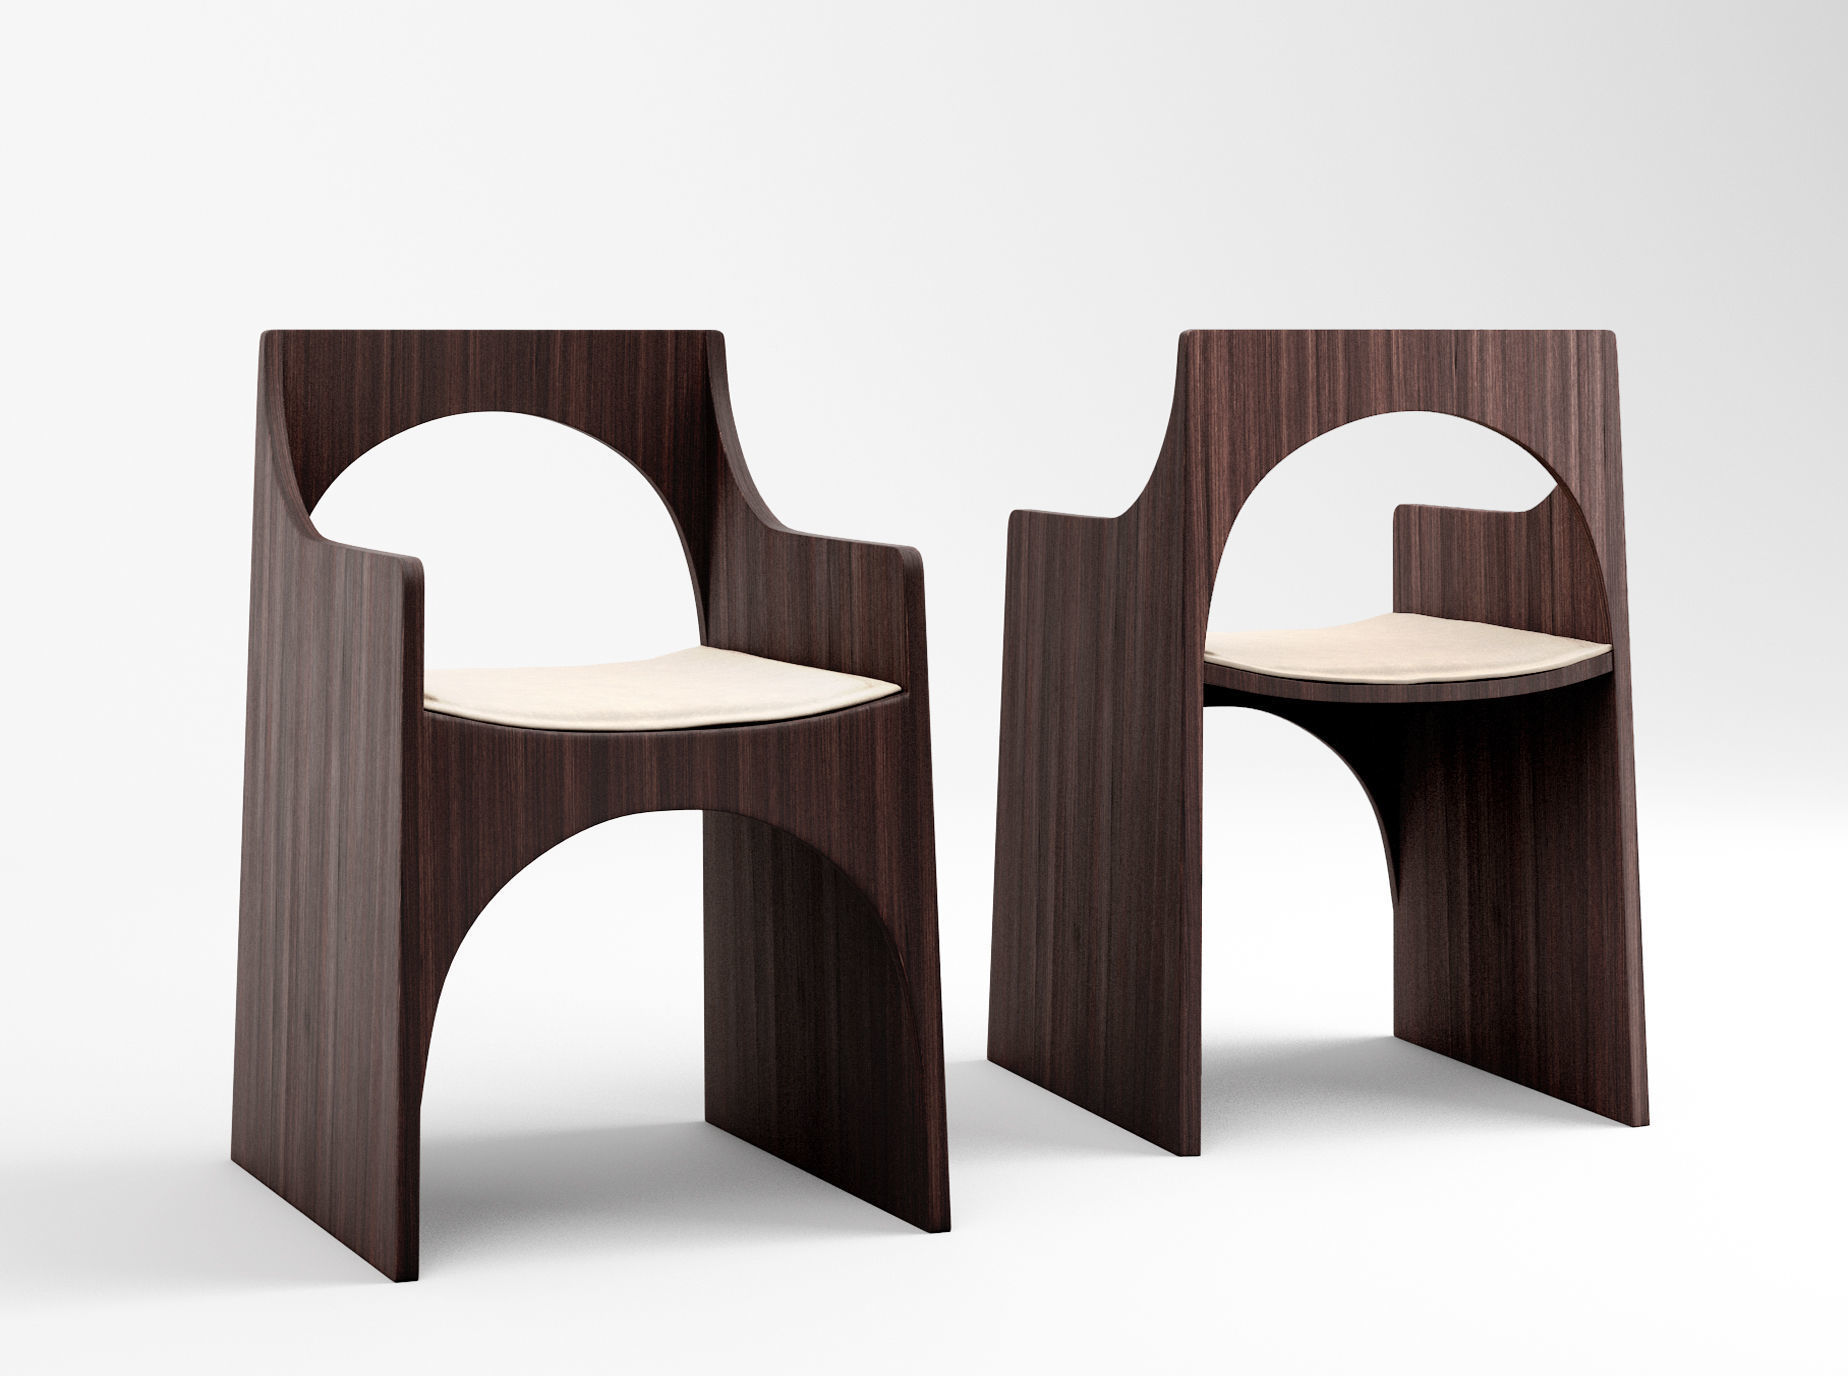 Christophe Delcourt Cle chair and Sol table